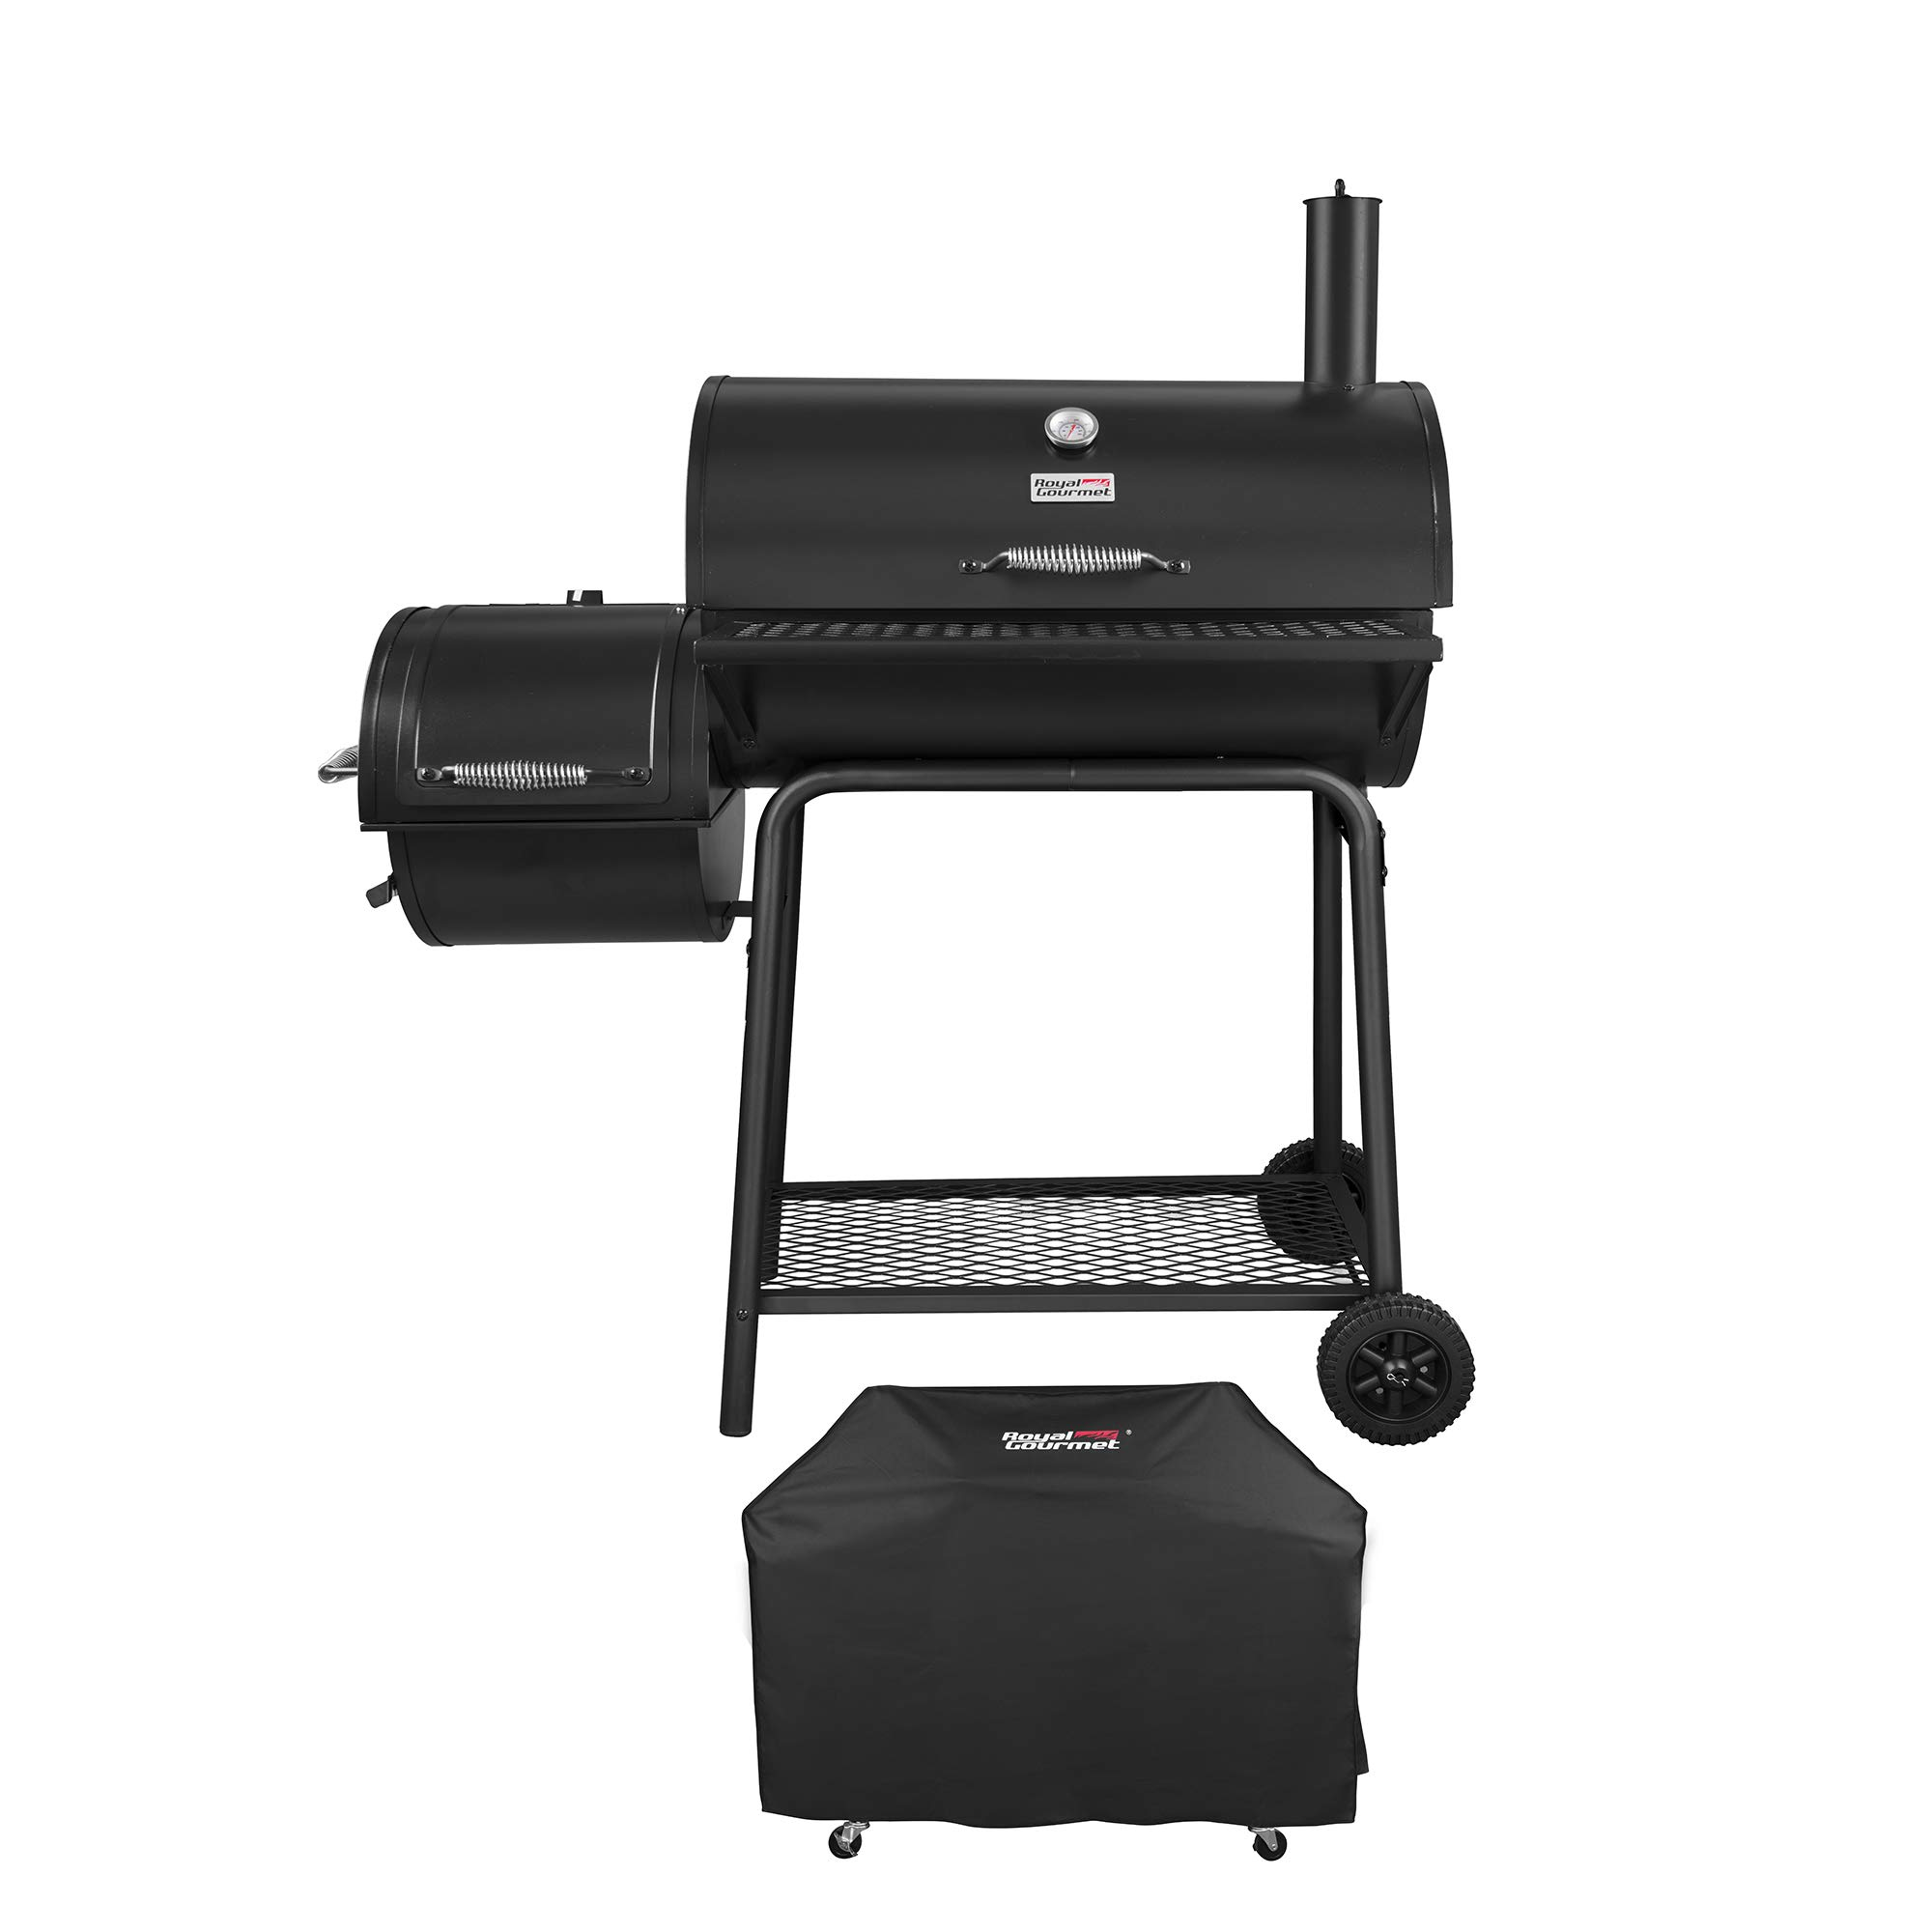 Royal Gourmet Charcoal Grill Offset Smoker (Grill + Cover) by Royal Gourmet